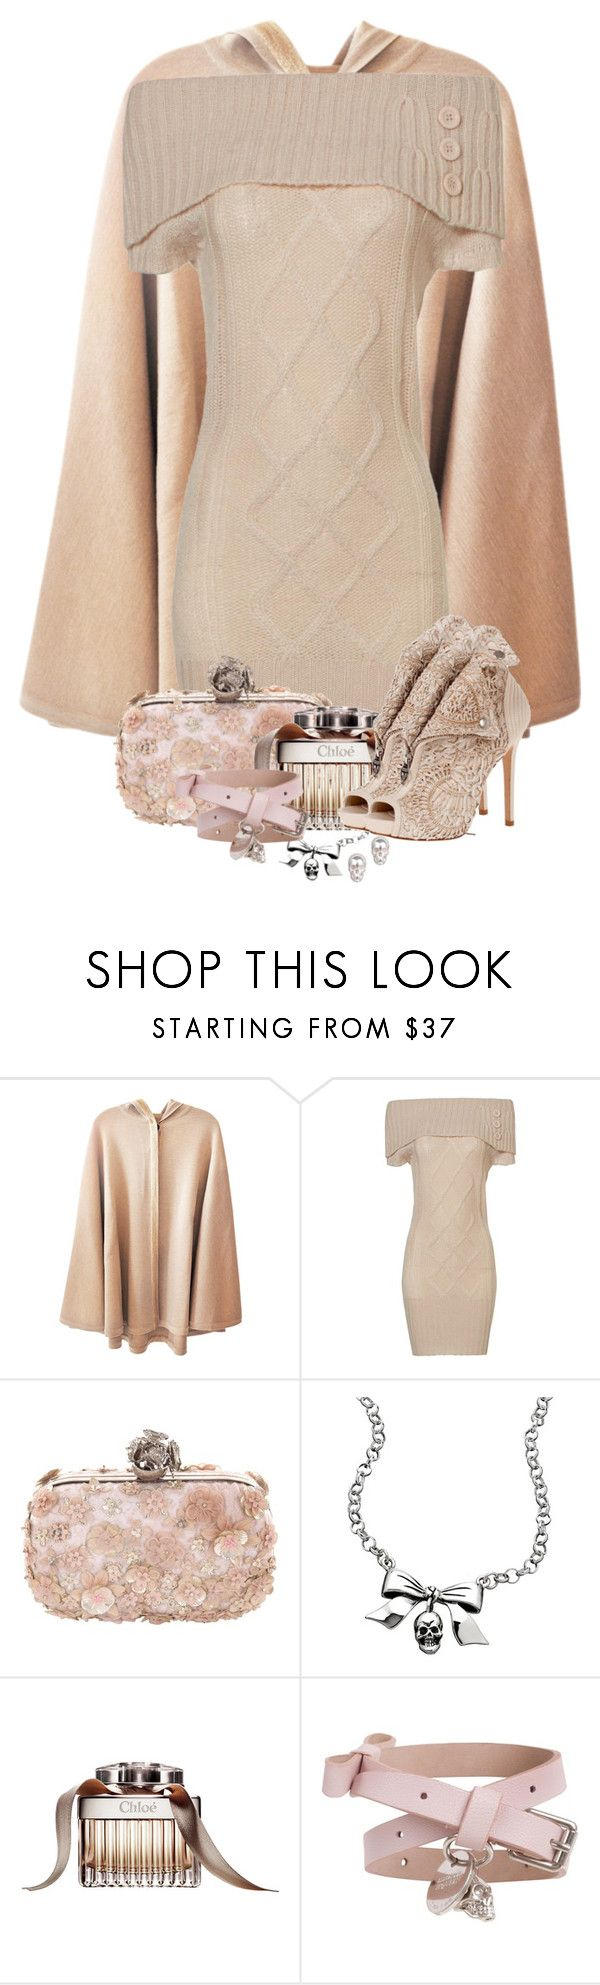 """La Femme Rose"" by curvacious ❤ liked on Polyvore featuring Jane Norman, Alexander McQueen, Femme Metale, Chloé, LeiVanKash, sweater dresses, ankle booties, feminine and skulls"